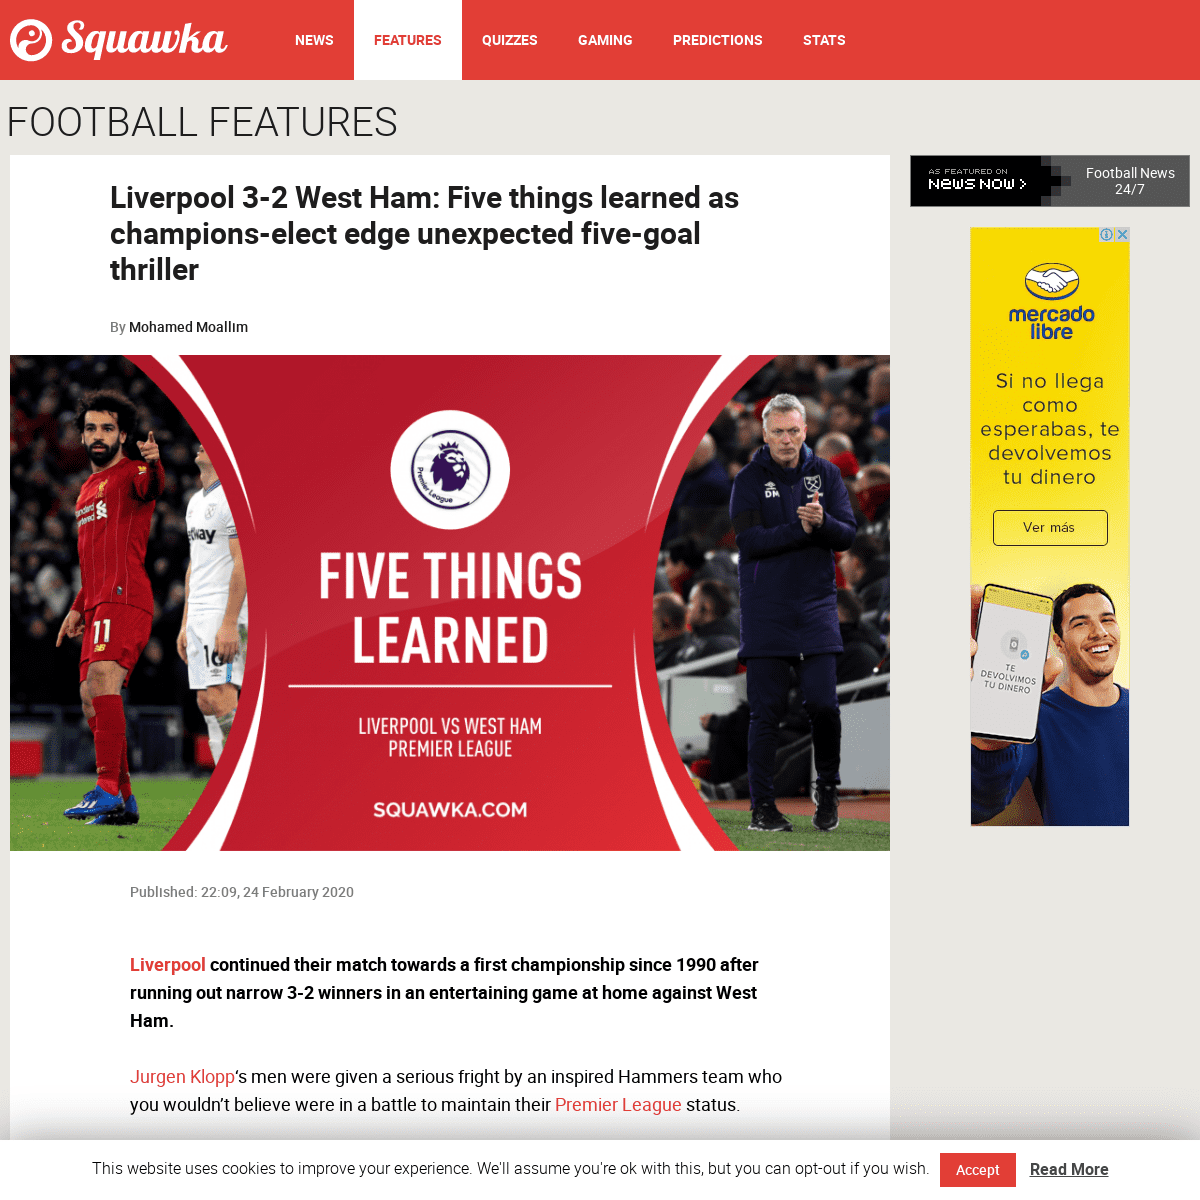 Liverpool 3-2 West Ham- Five things learned as champions-elect edge unexpected five-goal thriller - Squawka